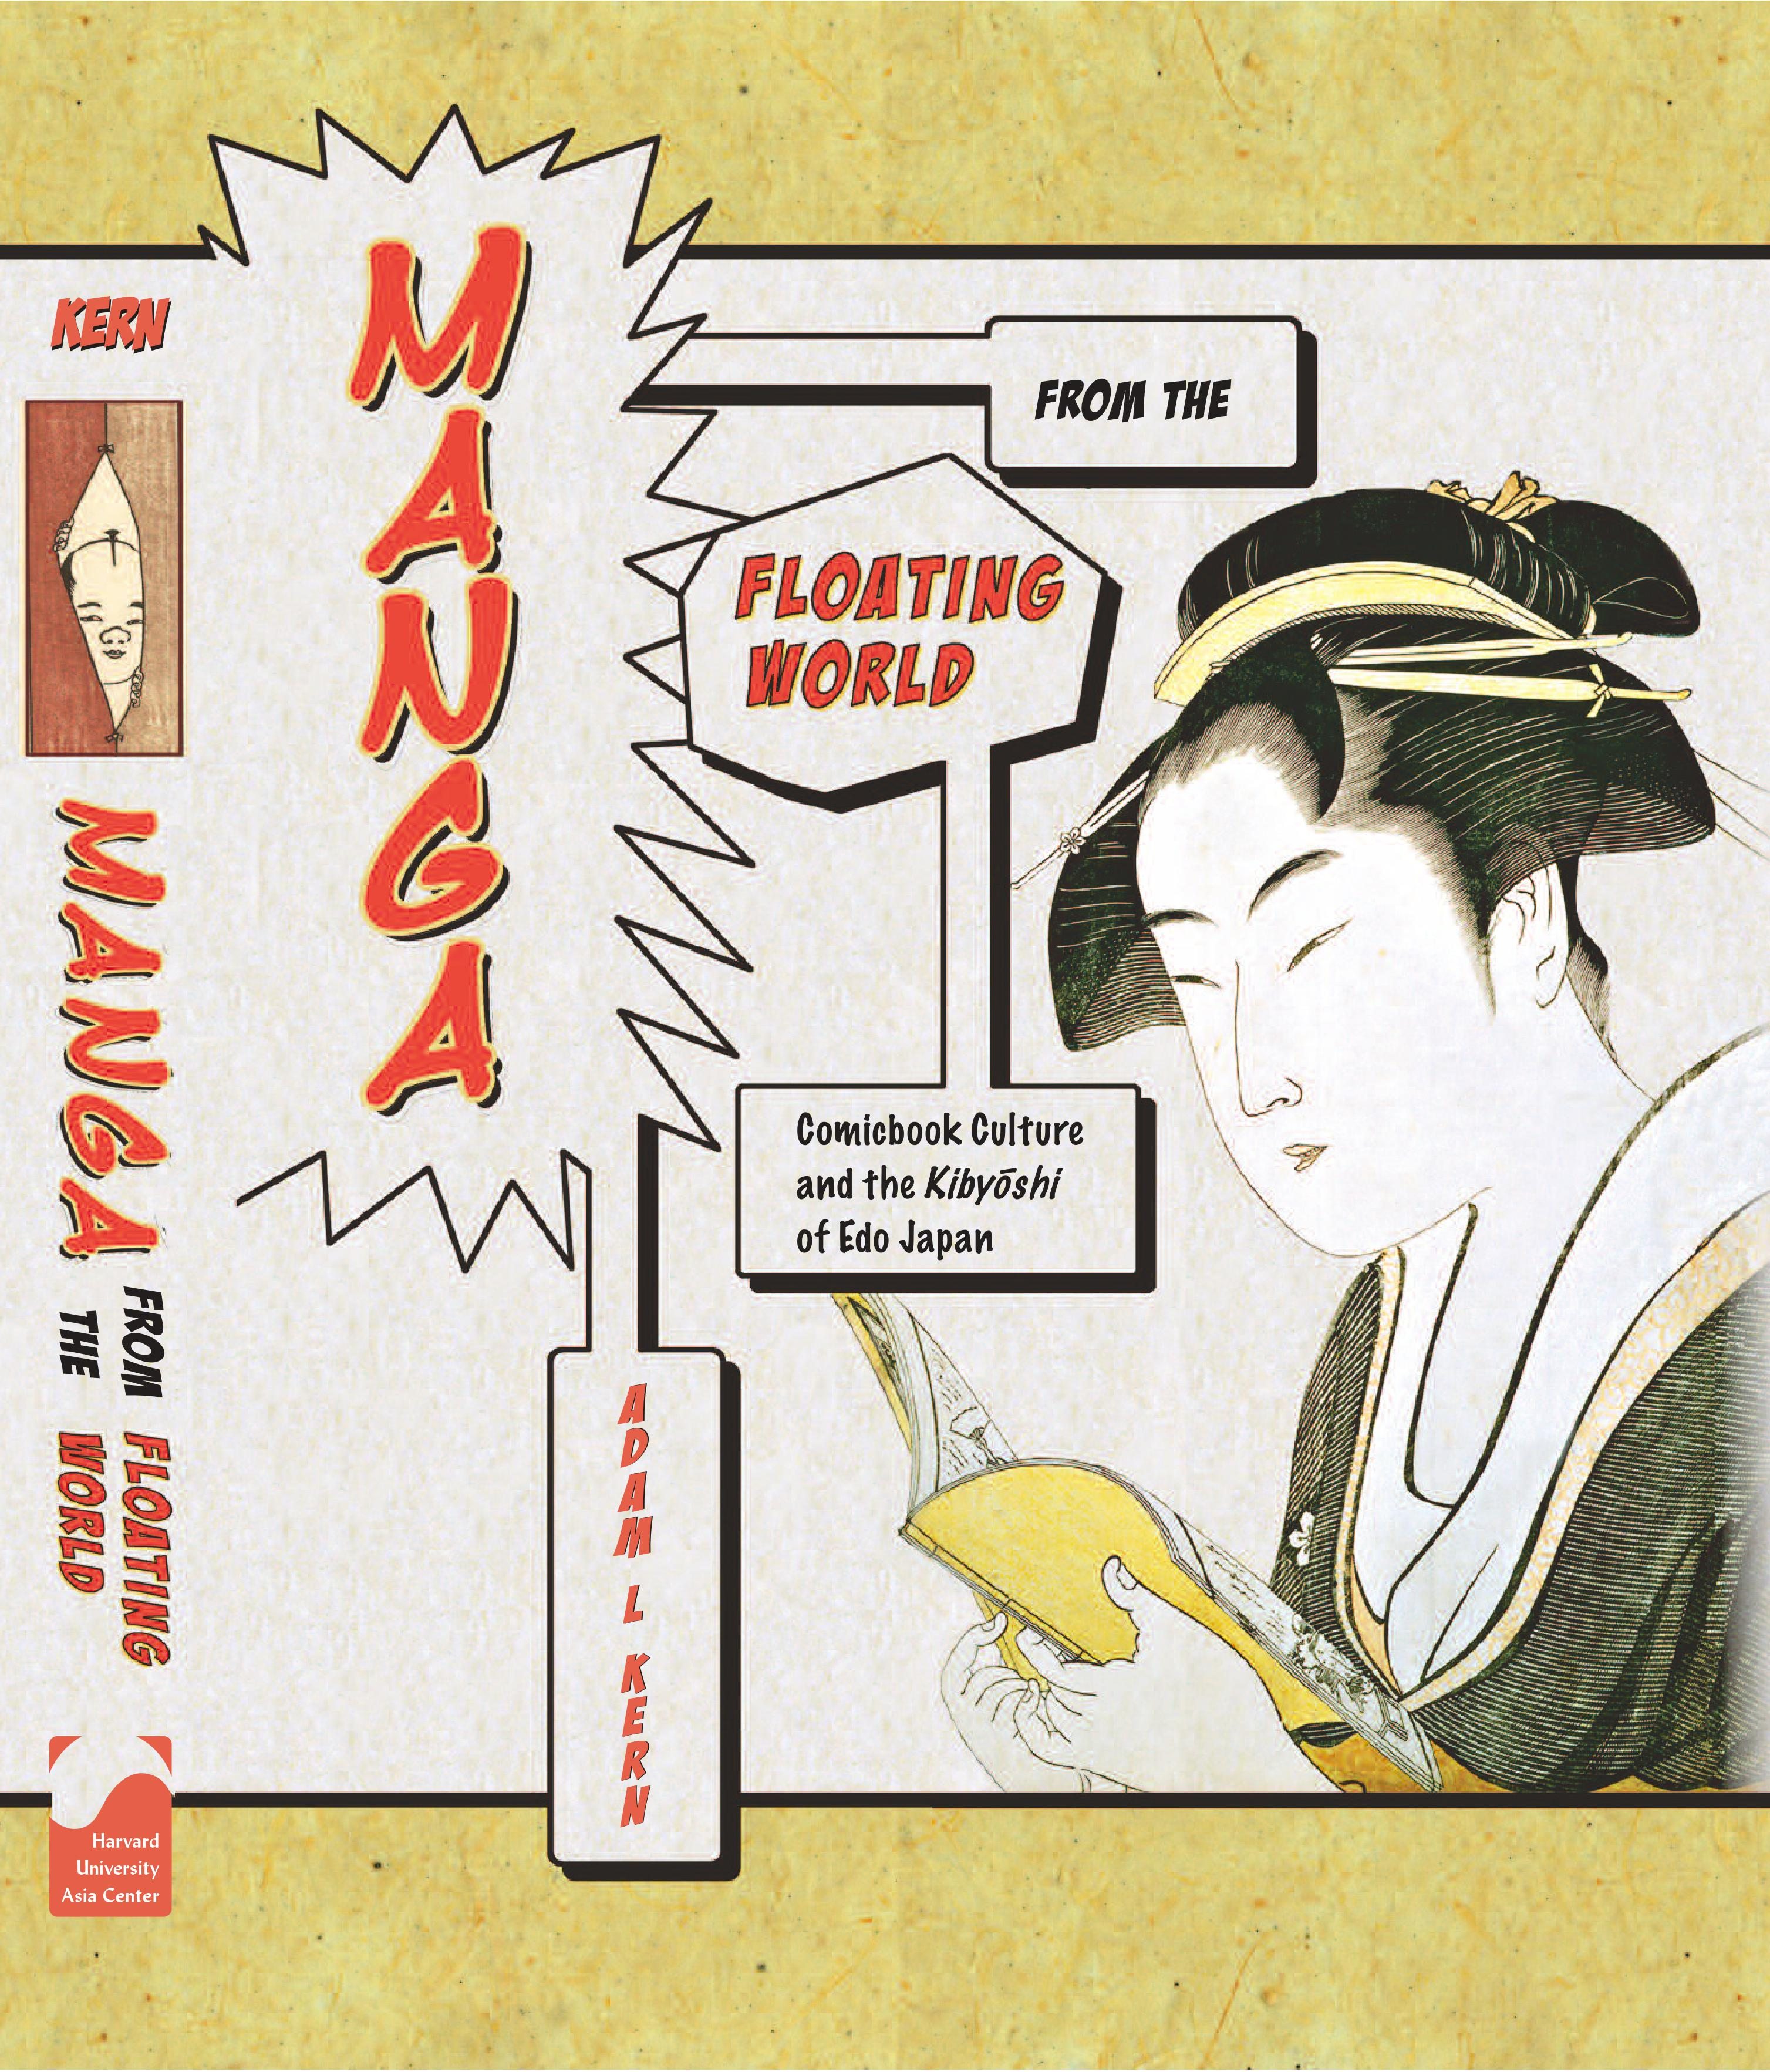 Manga from the Floating World